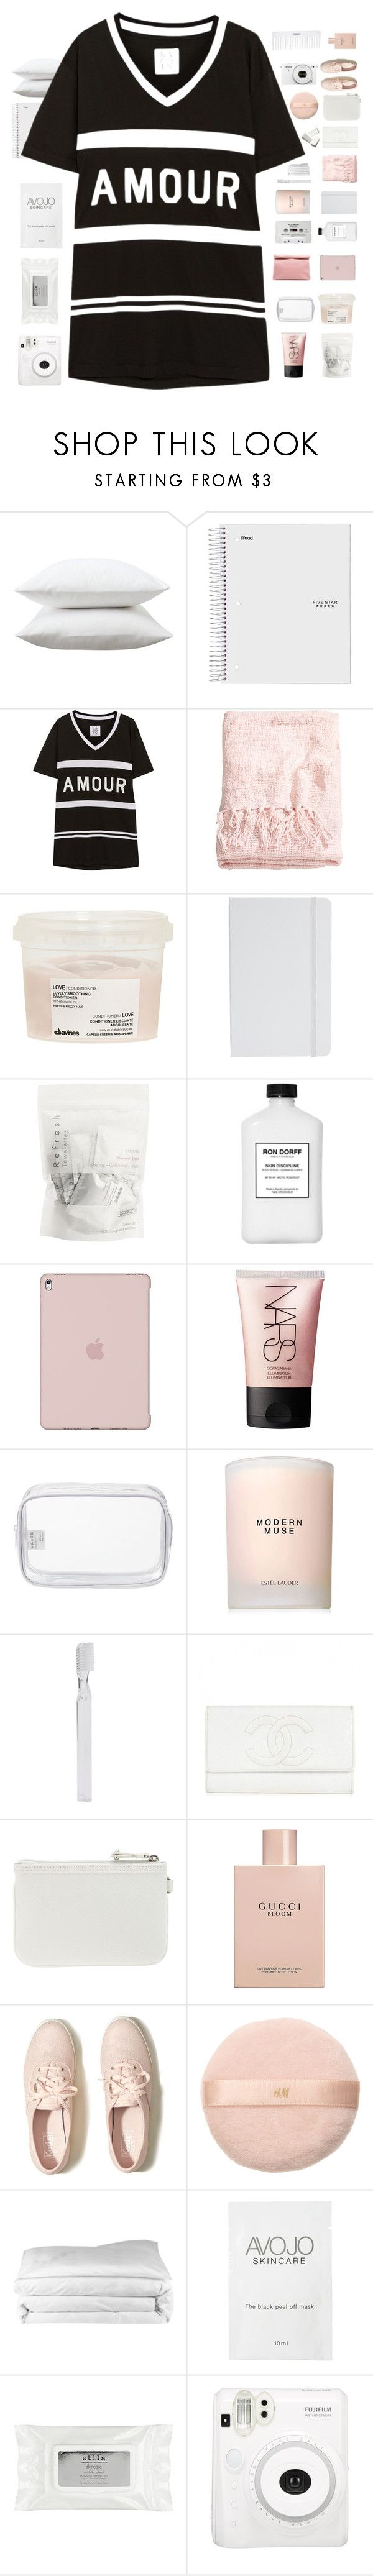 """""""in the middle of the night ♥ mondays outfit"""" by midnight-shimmer ❤ liked on Polyvore featuring Fieldcrest, Zoe Karssen, H&M, Davines, ASOS, Ron Dorff, NARS Cosmetics, Marie Turnor, John Lewis and CASSETTE"""